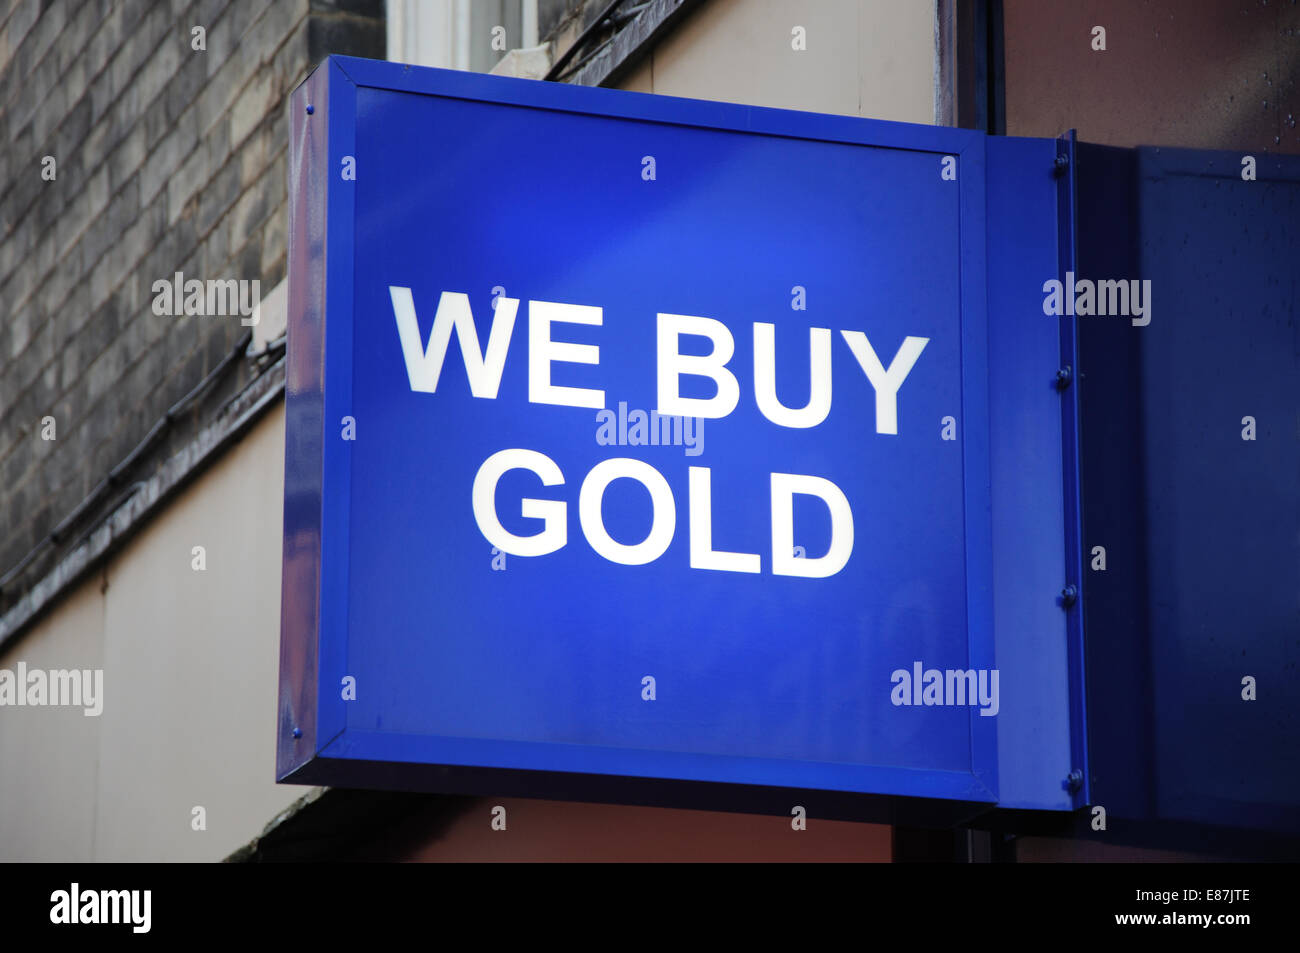 We Buy Gold sign, Leicester, England, UK - Stock Image